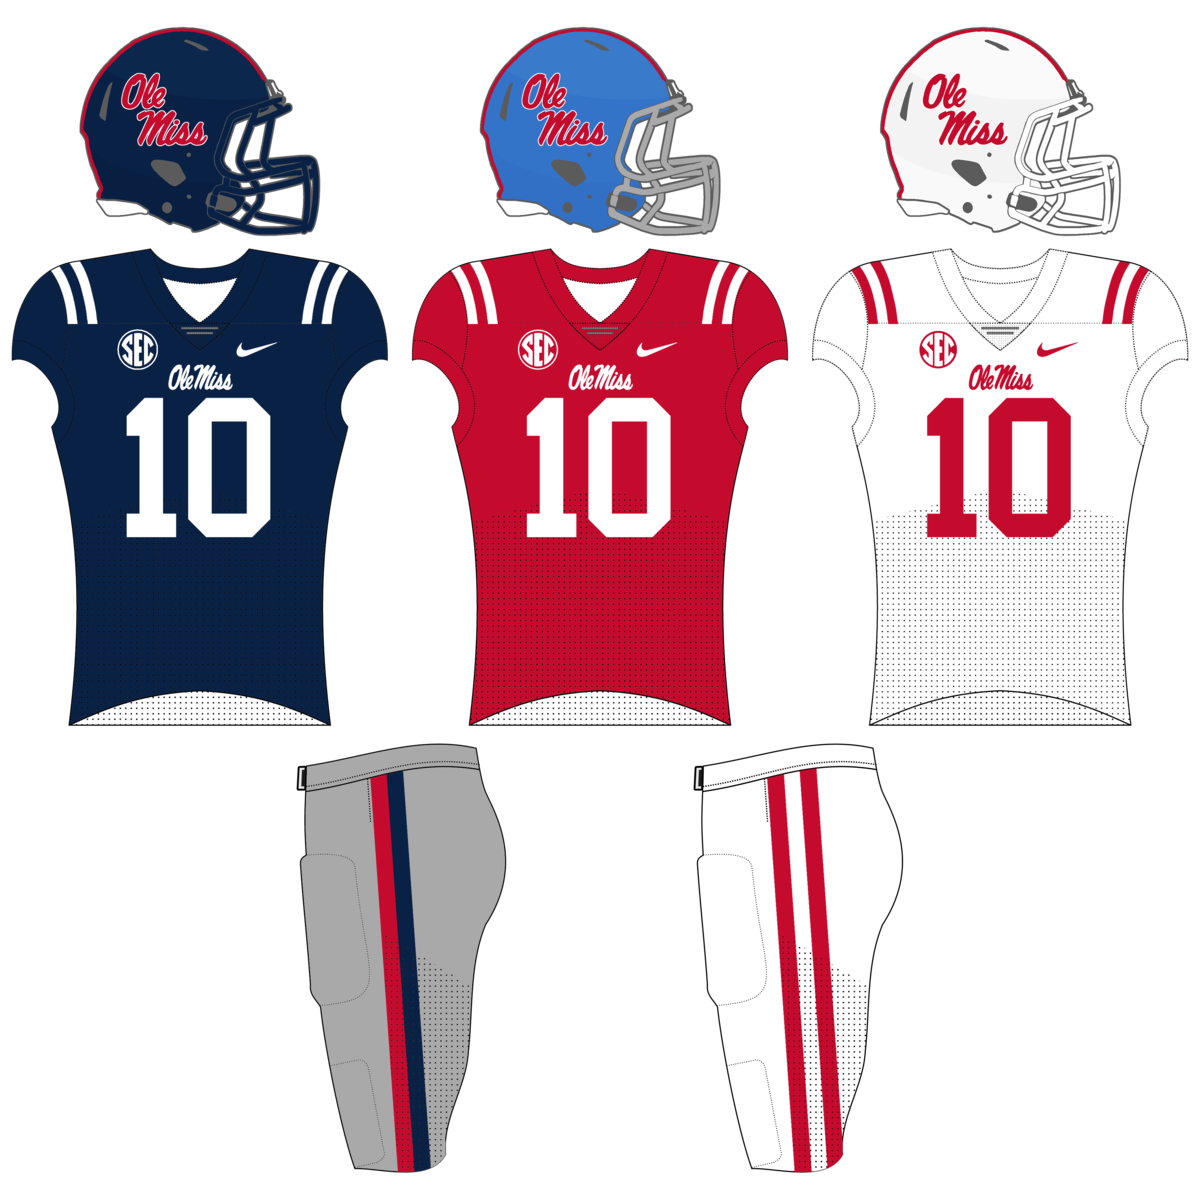 5e00cb5de4d Ole Miss Rebels football - Wikipedia